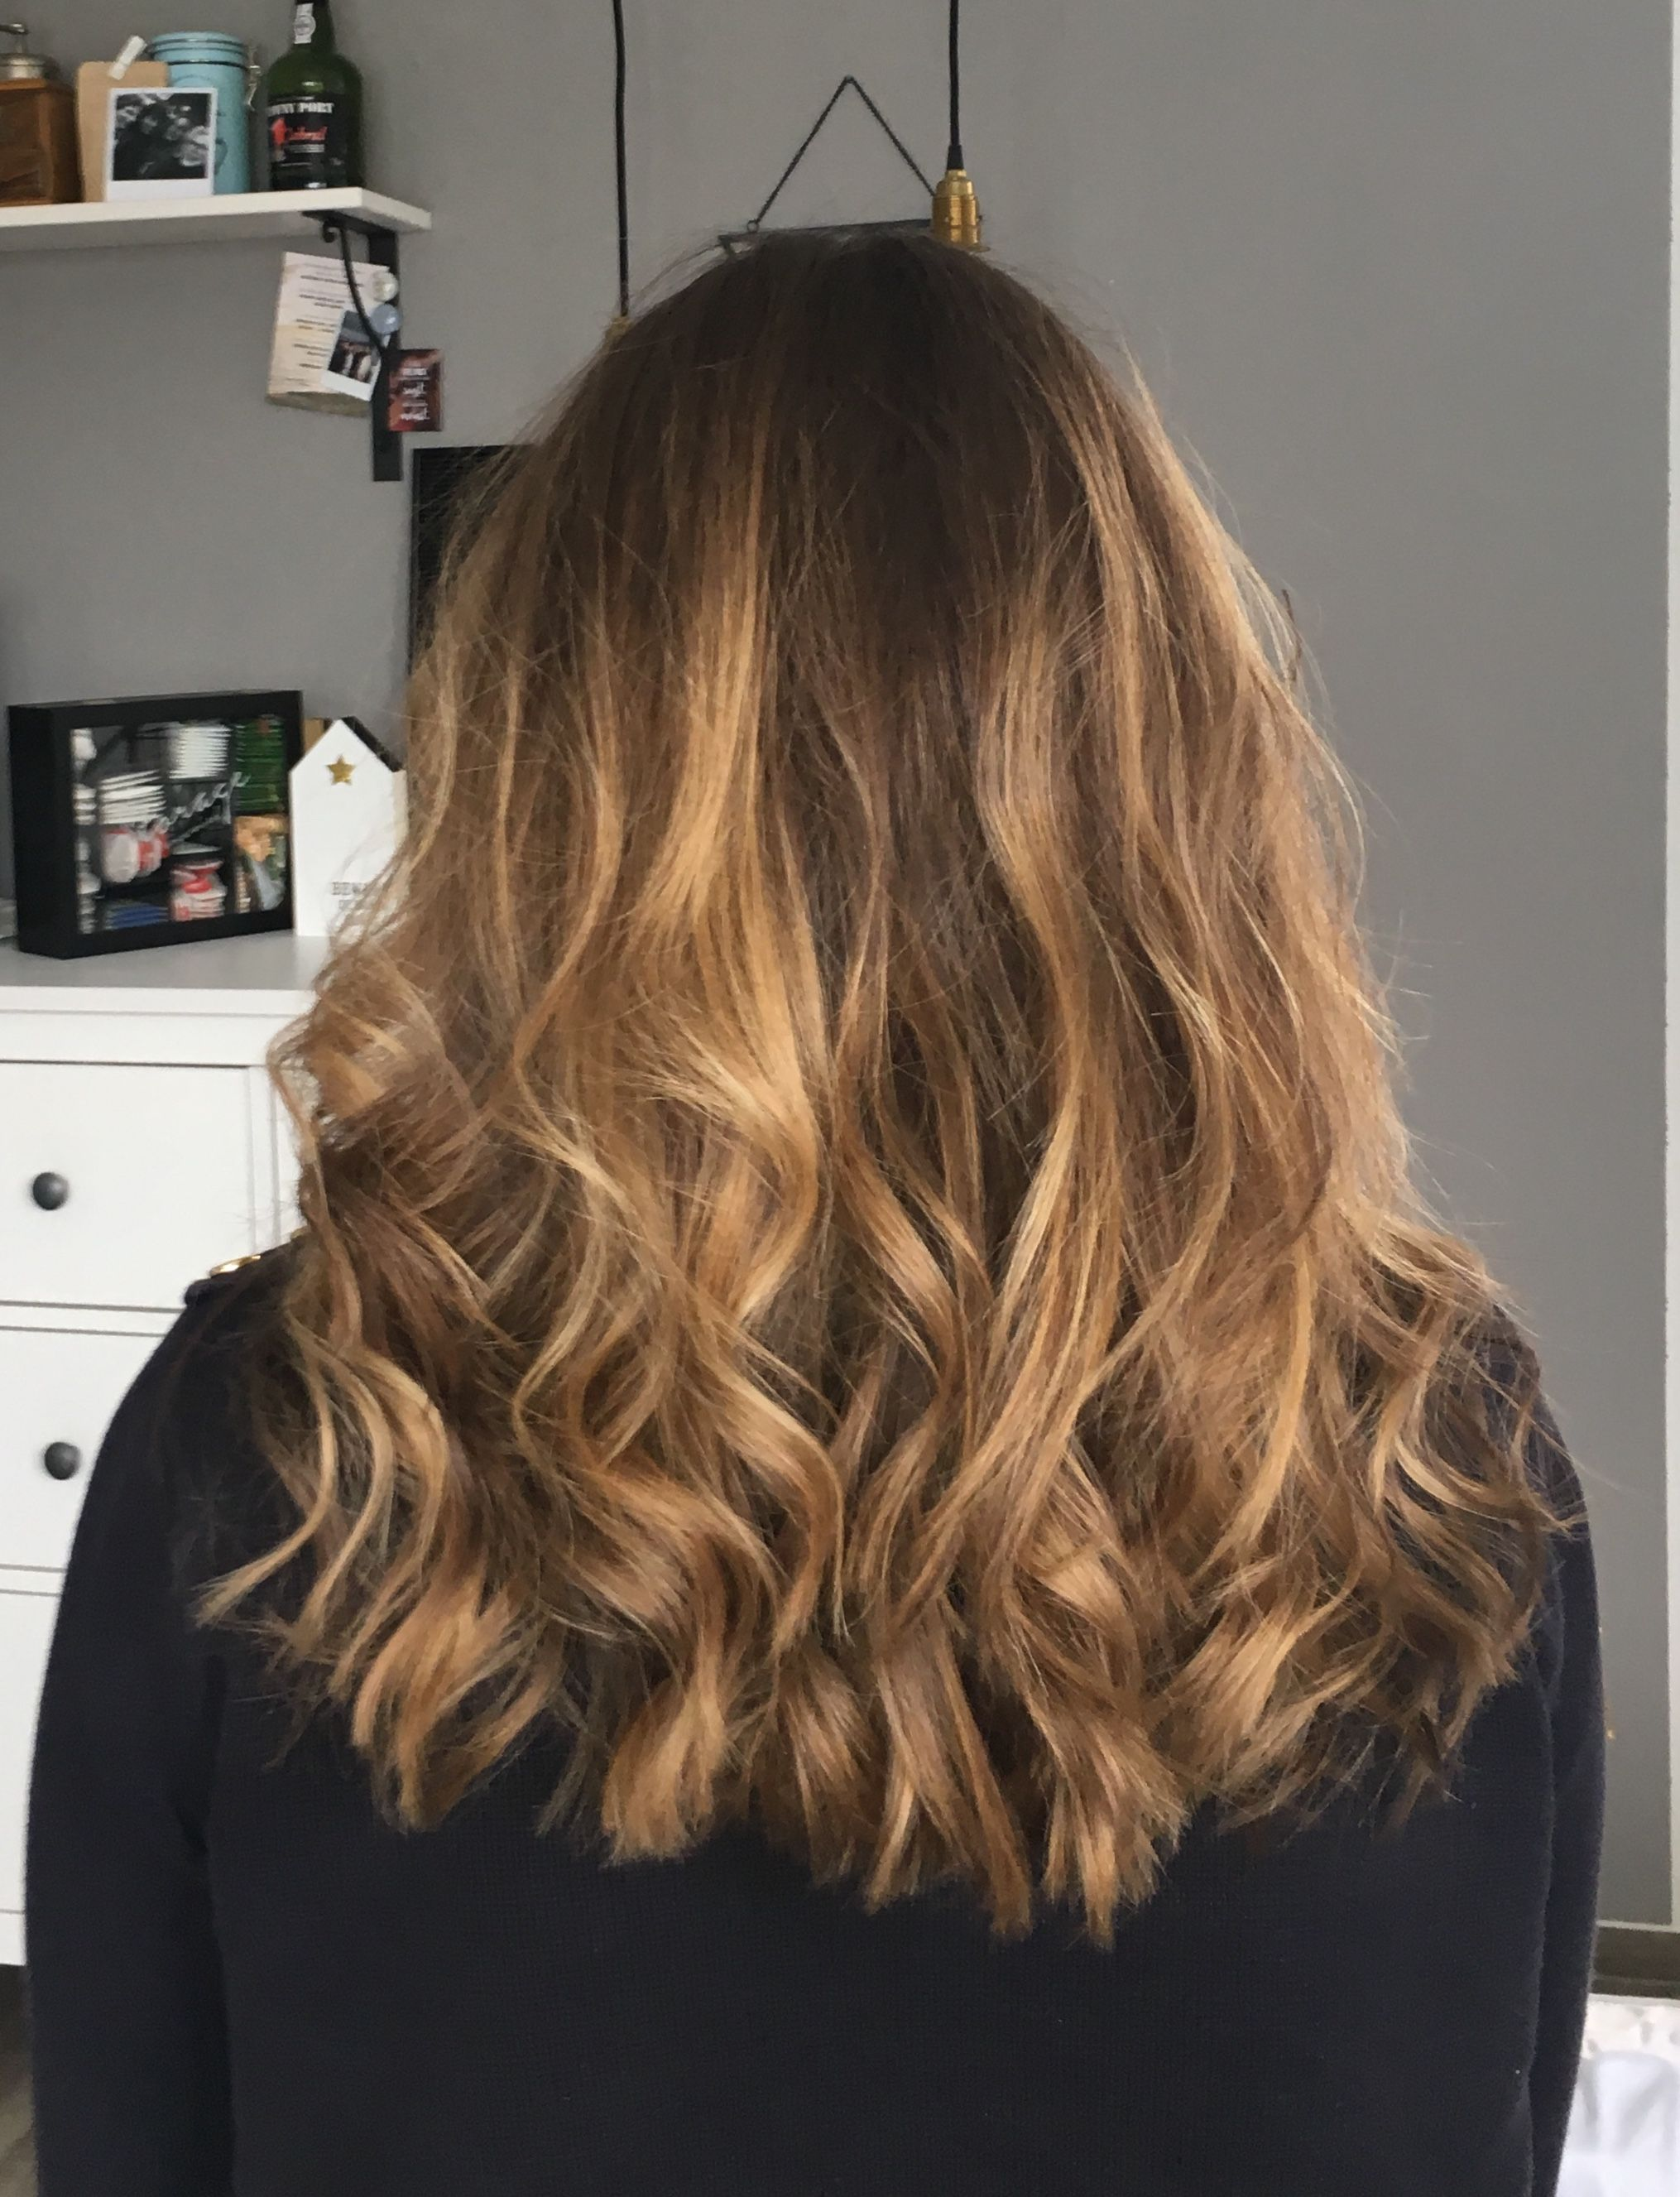 Frisur Mittellanges Haar Ombre Balayage Locken Frisuren